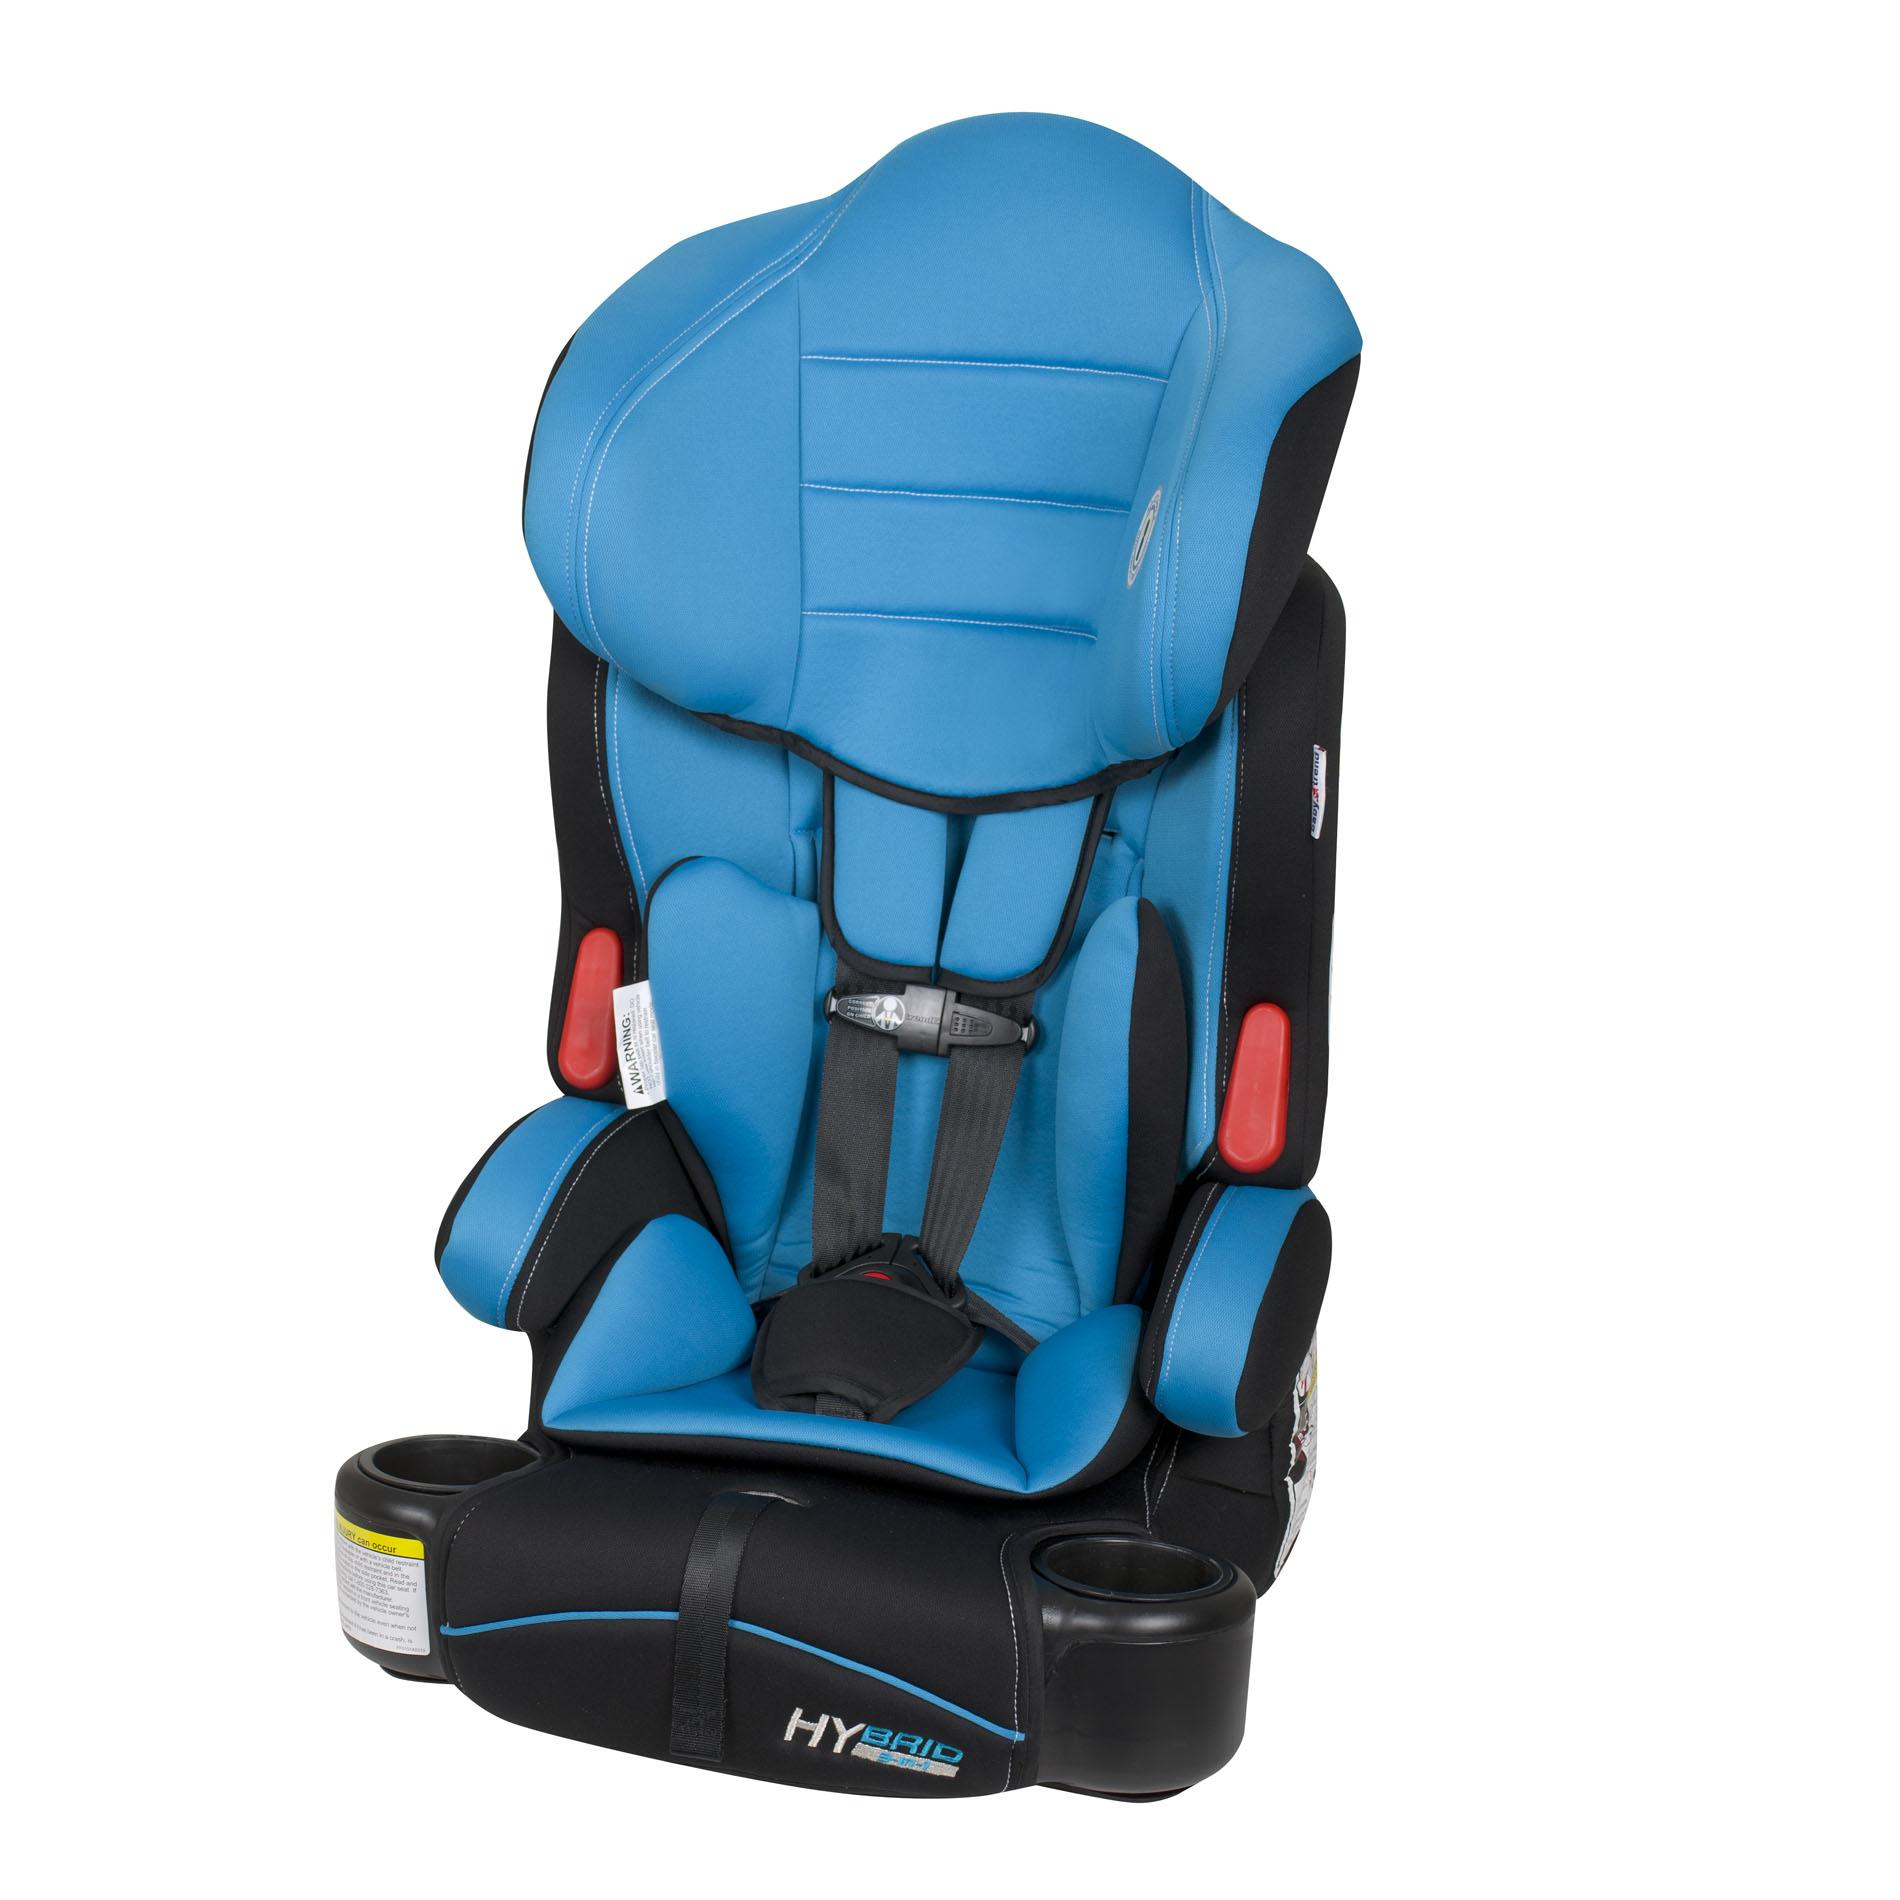 Hybrid 3-in-1 Booster Car Seat